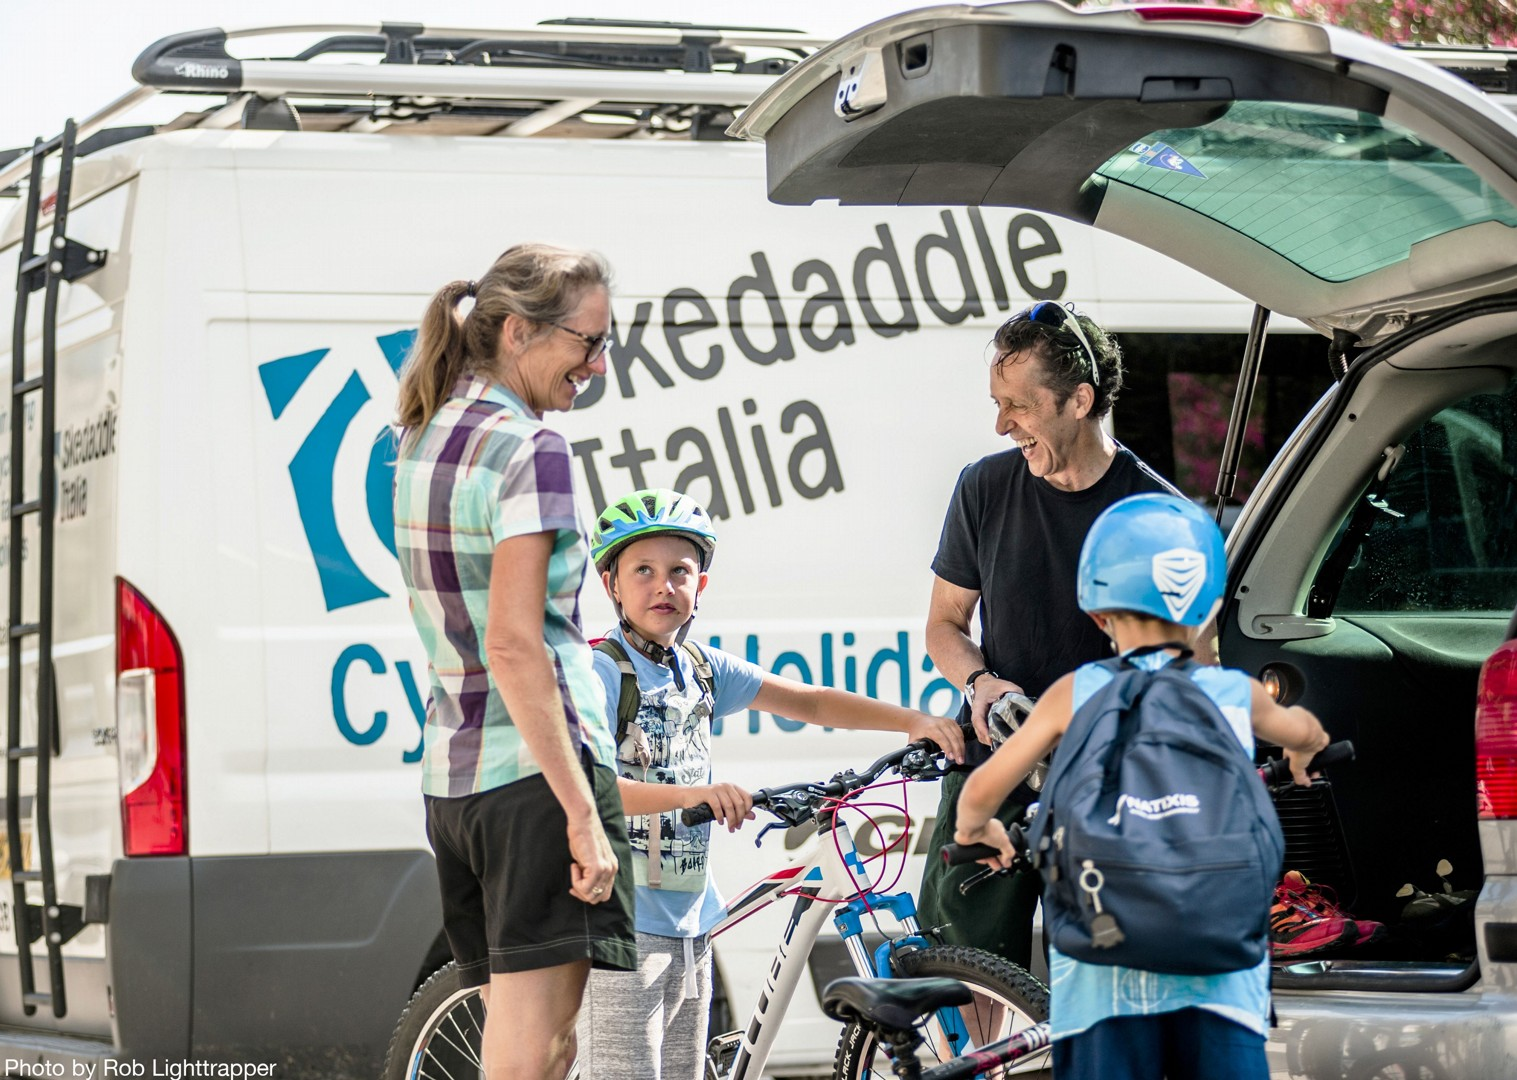 skedaddle-van-supported-italy-lake-garda.jpg - Northern Italy - Gentle Via Claudia - Supported Family Cycling Holiday - Italia Leisure and Family Cycling